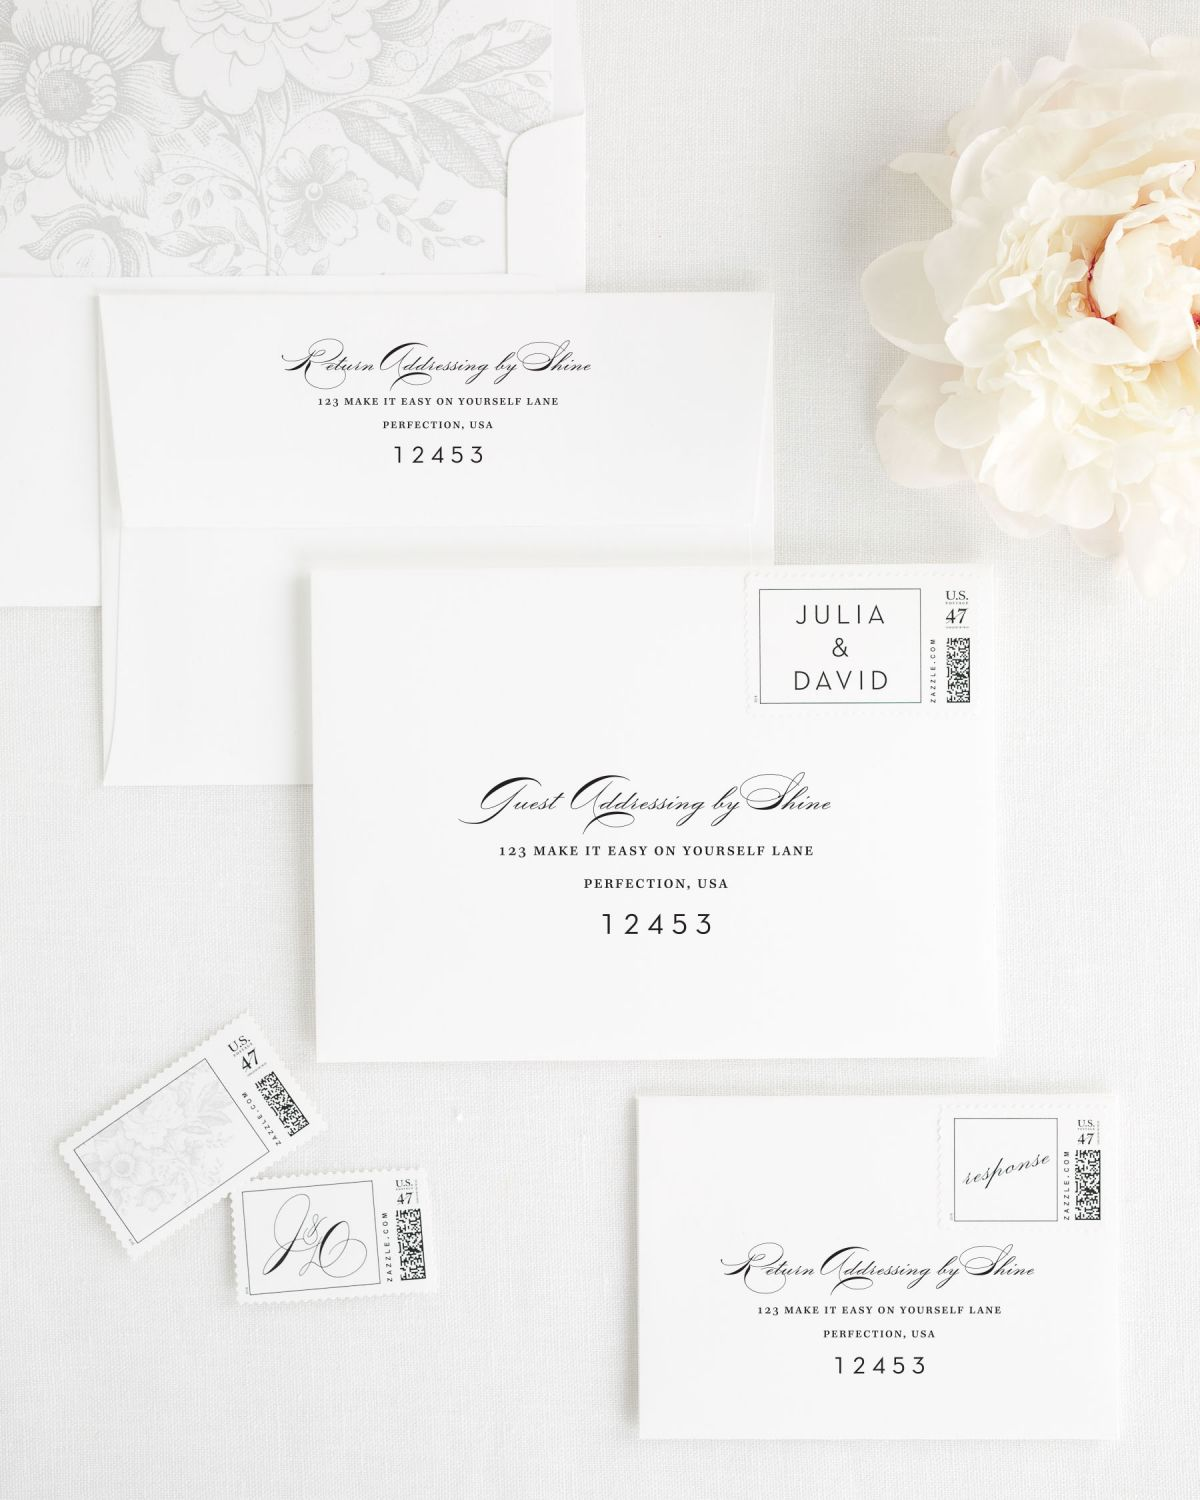 Vintage Glam Wedding Invitations - Wedding Invitations by Shine